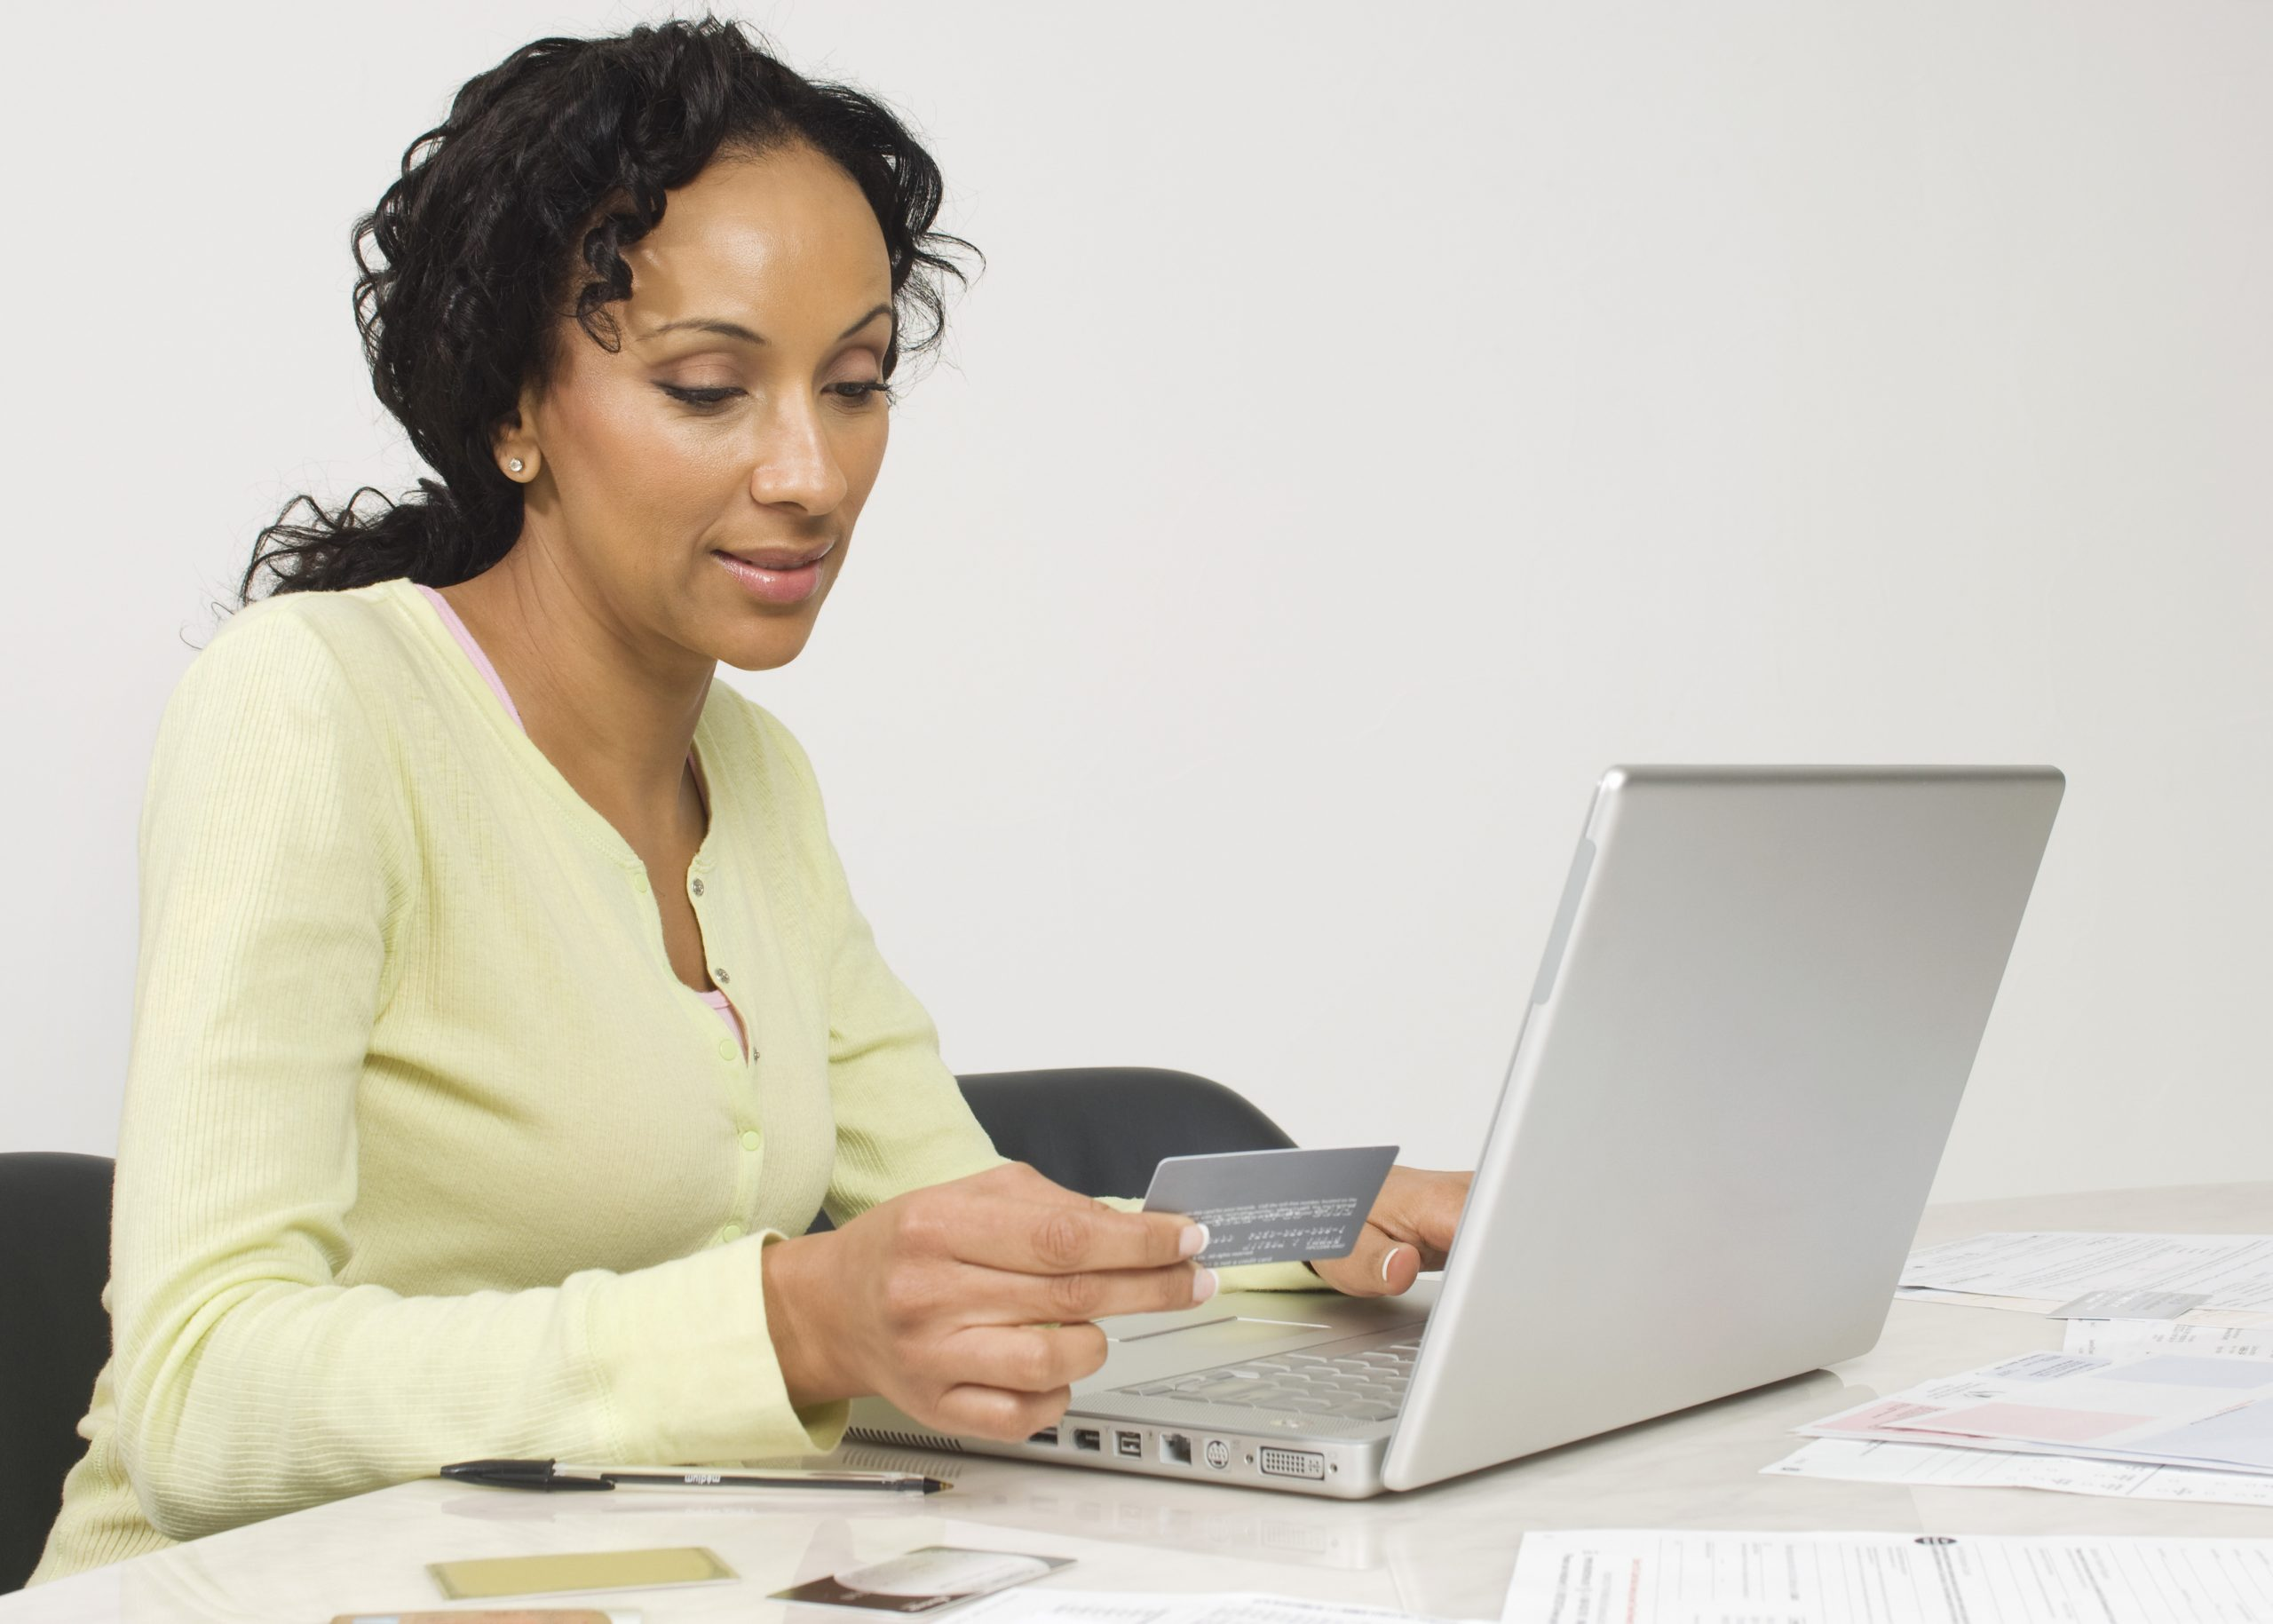 Adult woman using laptop and debit card. Link takes you to the Bank of Versailles Tiered Checking page.